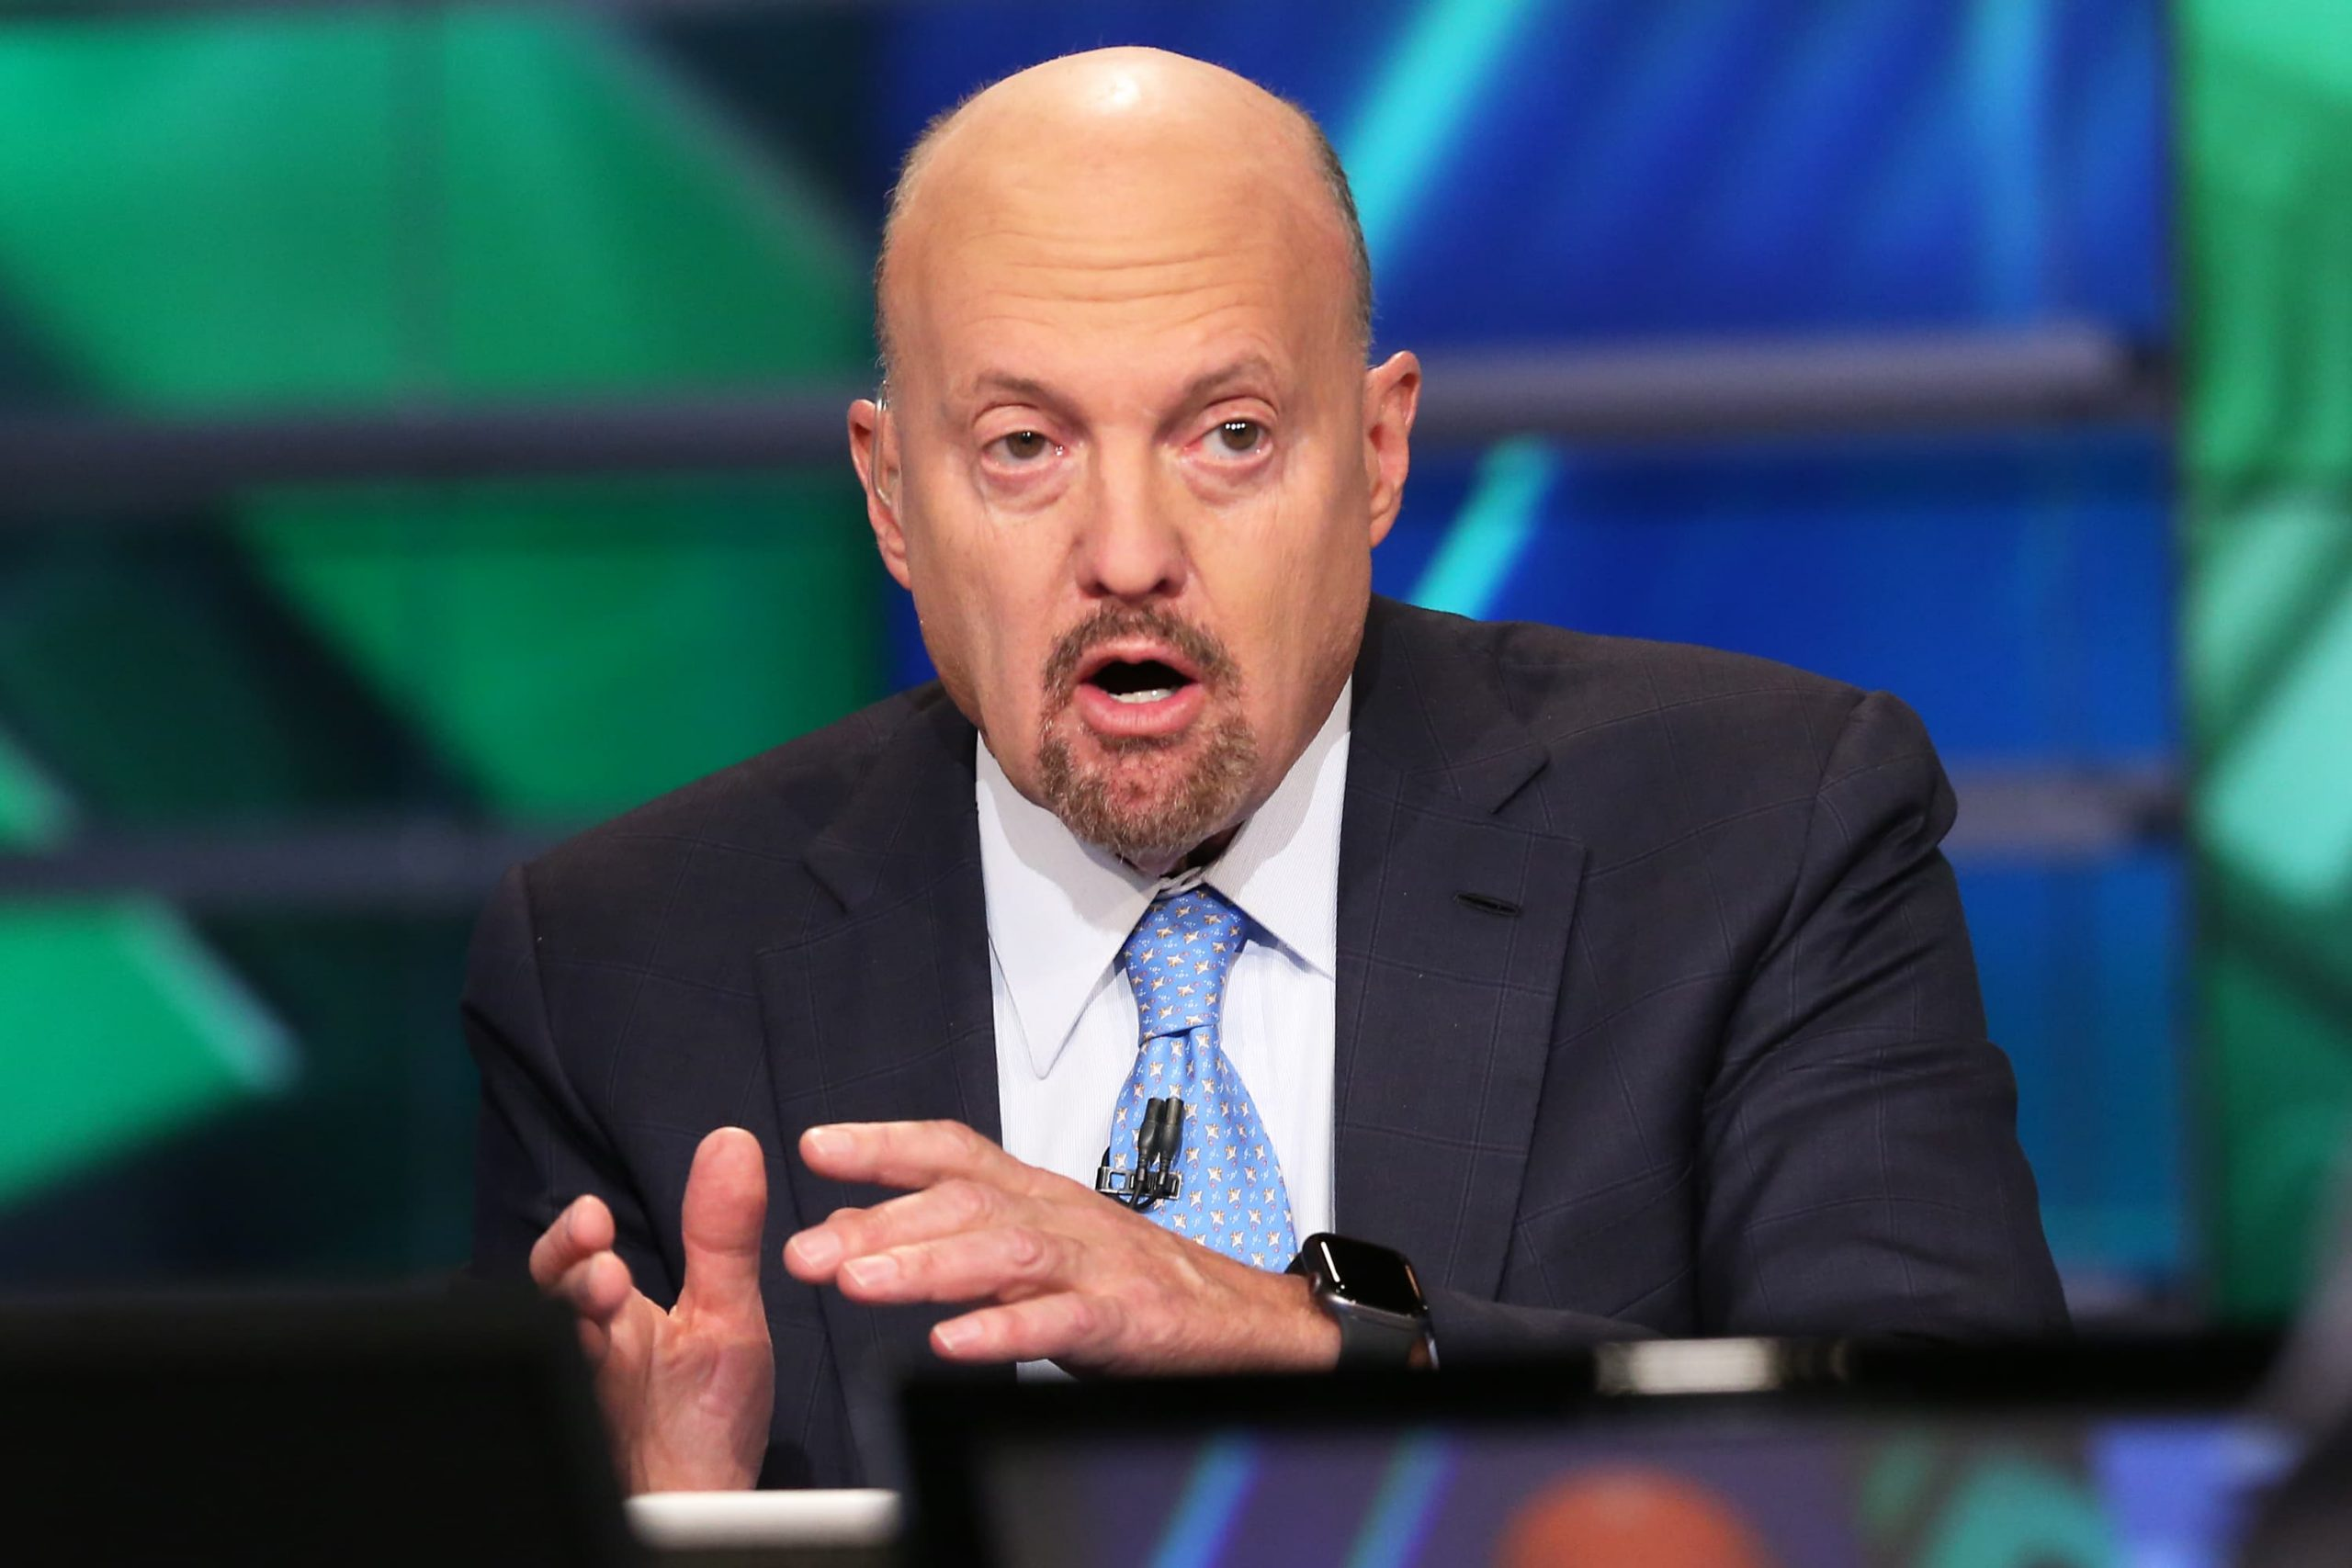 Jim Cramer says he sold some of his bitcoin and paid off a mortgage